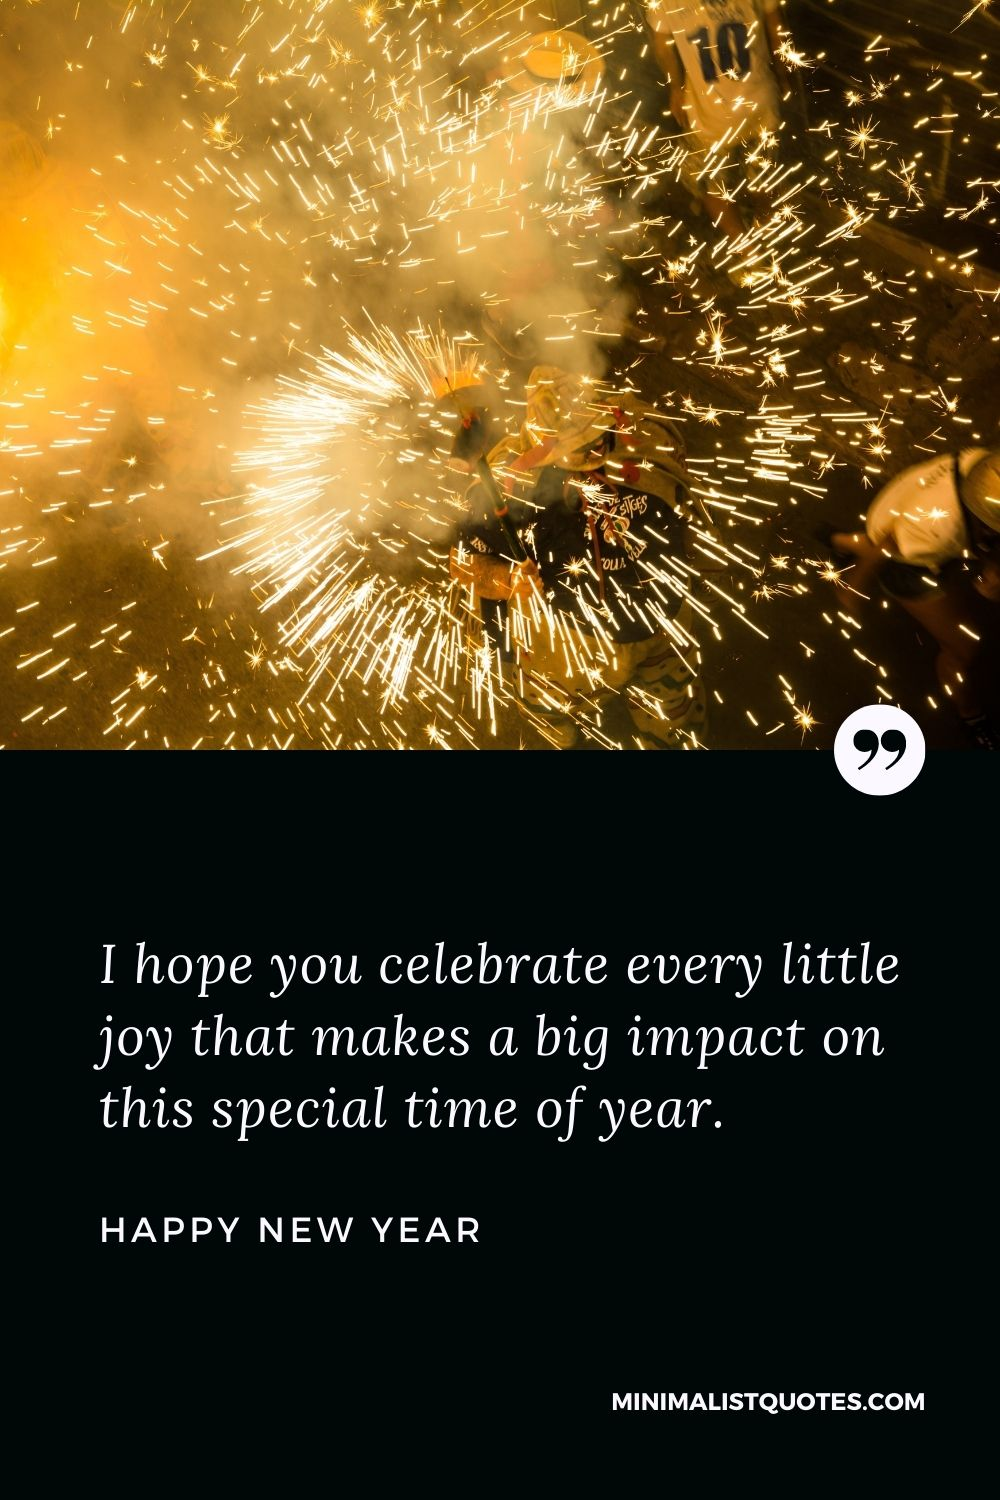 New Year Wish - I hope you celebrate every little joy that makes a big impact on this special time of year.